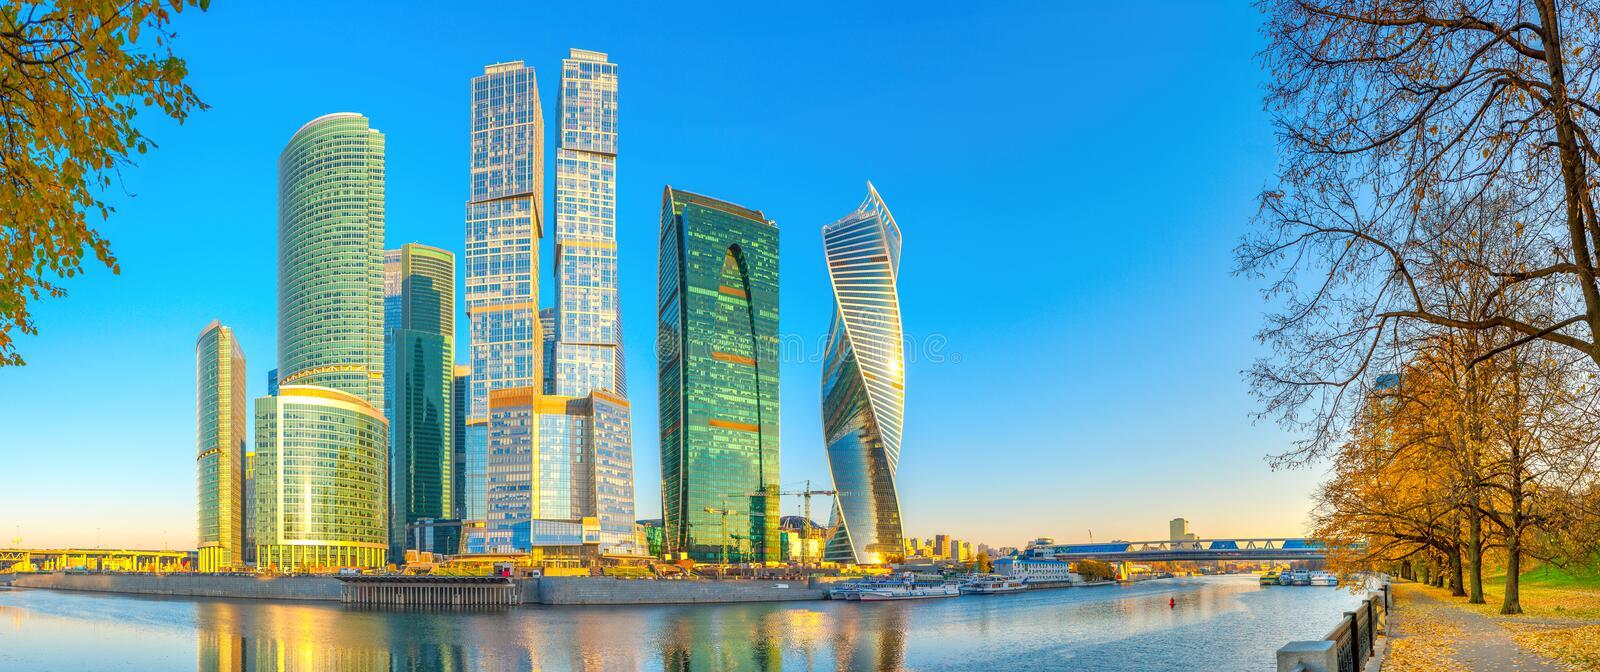 Panorama of the international business center. stock images